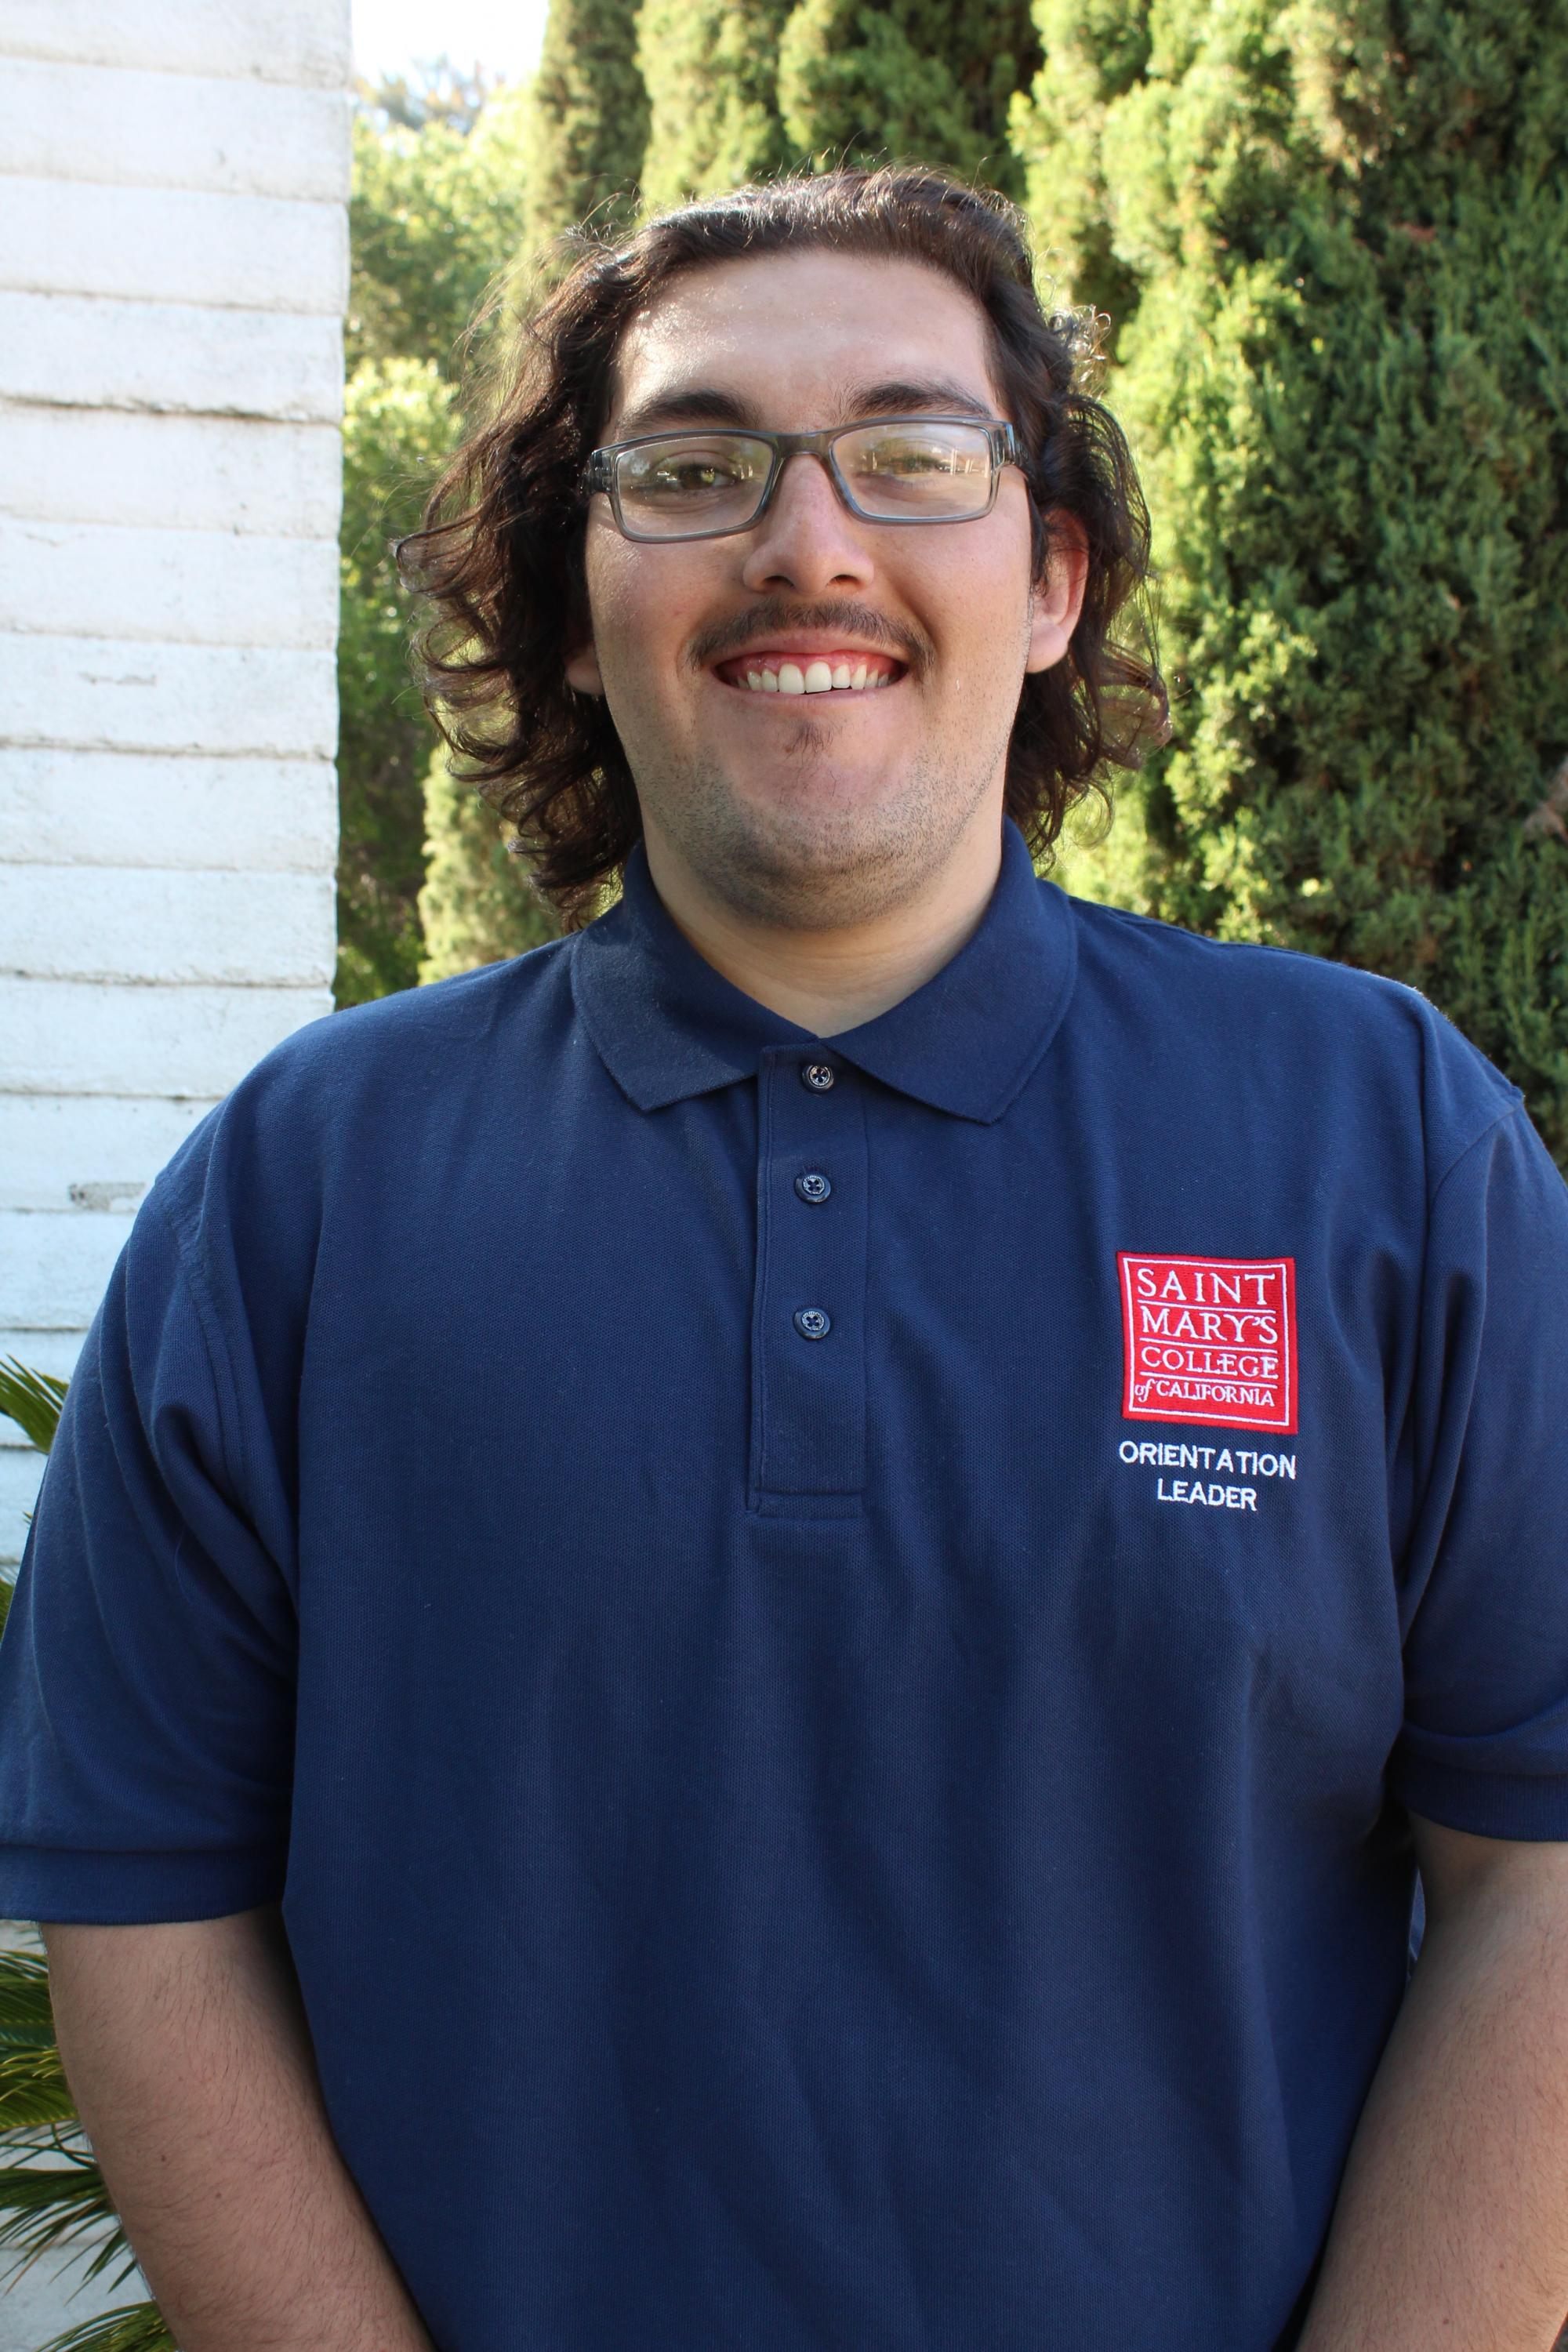 Good Day Gael Nation. My name is Moises Gonzalez and I am a History Major from the great city of Bakersfield, California. I am a singer in all three choirs at SMC, as well as, the co-president of Men's Club Baseball. I am absolutely pumped to meet all of y'all!